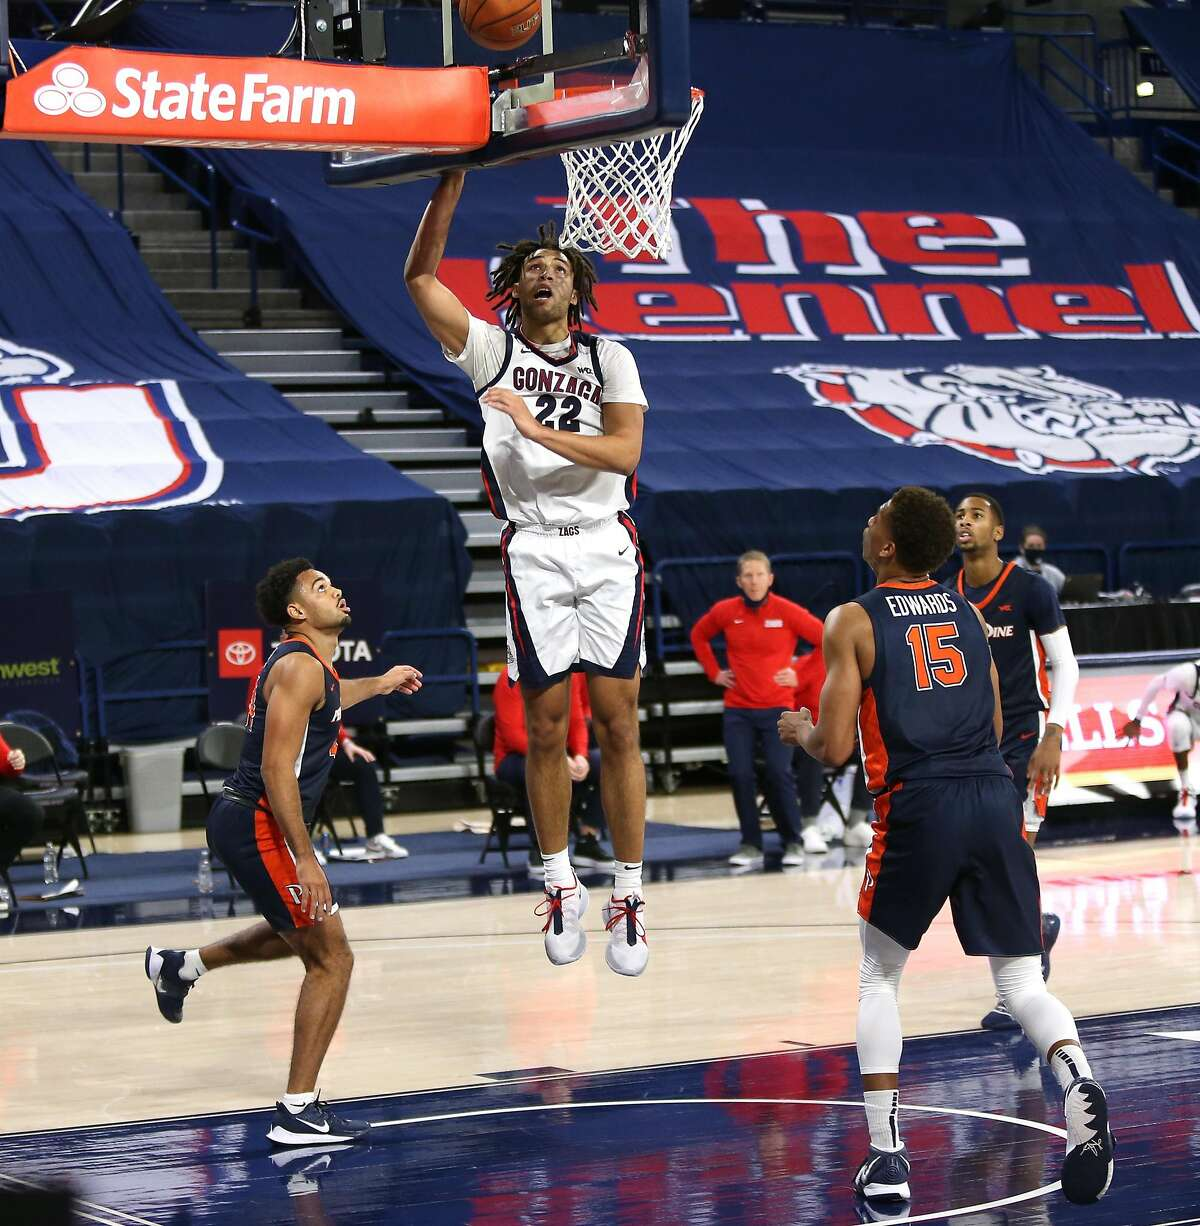 SPOKANE, WASHINGTON - JANUARY 14: Anton Watson #22 of the Gonzaga Bulldogs puts up a shot against the Pepperdine Waves in the second half at McCarthey Athletic Center on January 14, 2021 in Spokane, Washington. Gonzaga defeats Pepperdine 95-70. (Photo by William Mancebo/Getty Images)